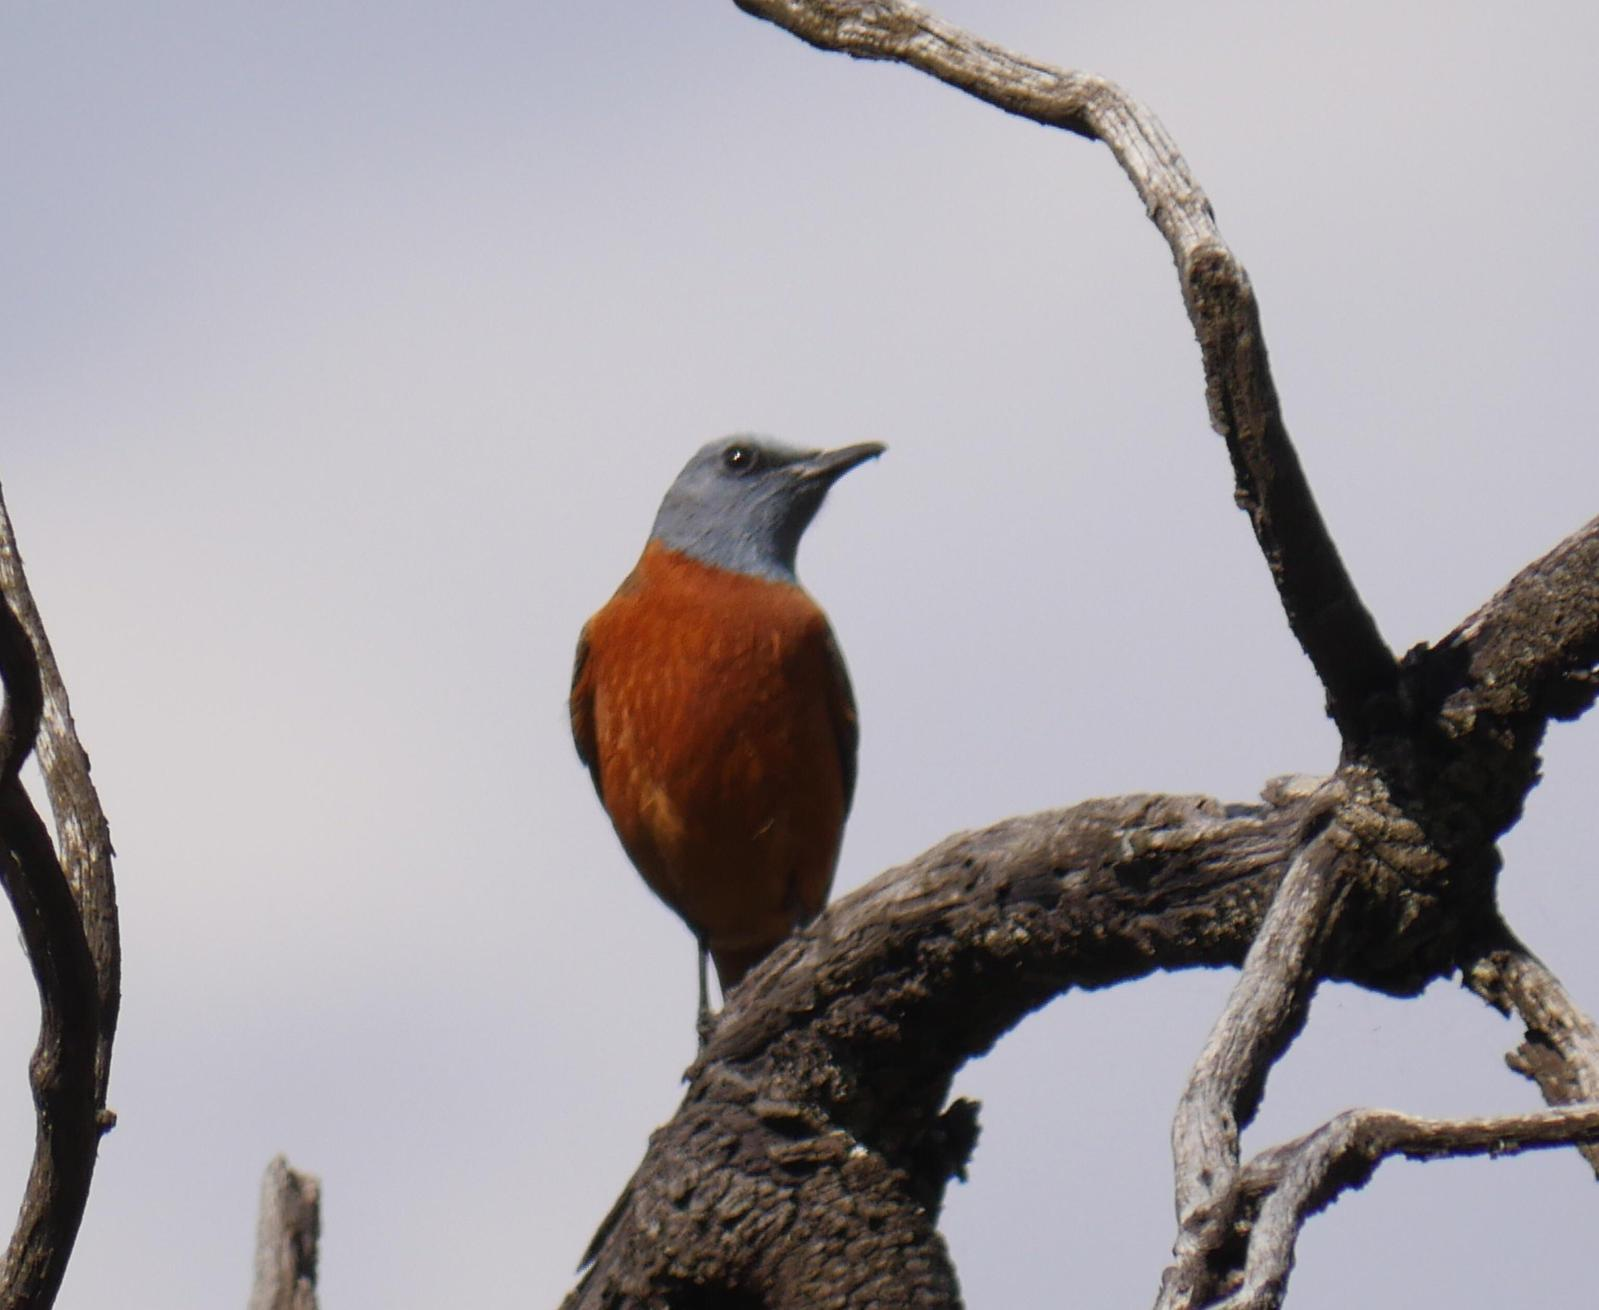 Cape Rock-Thrush Photo by Peter Lowe